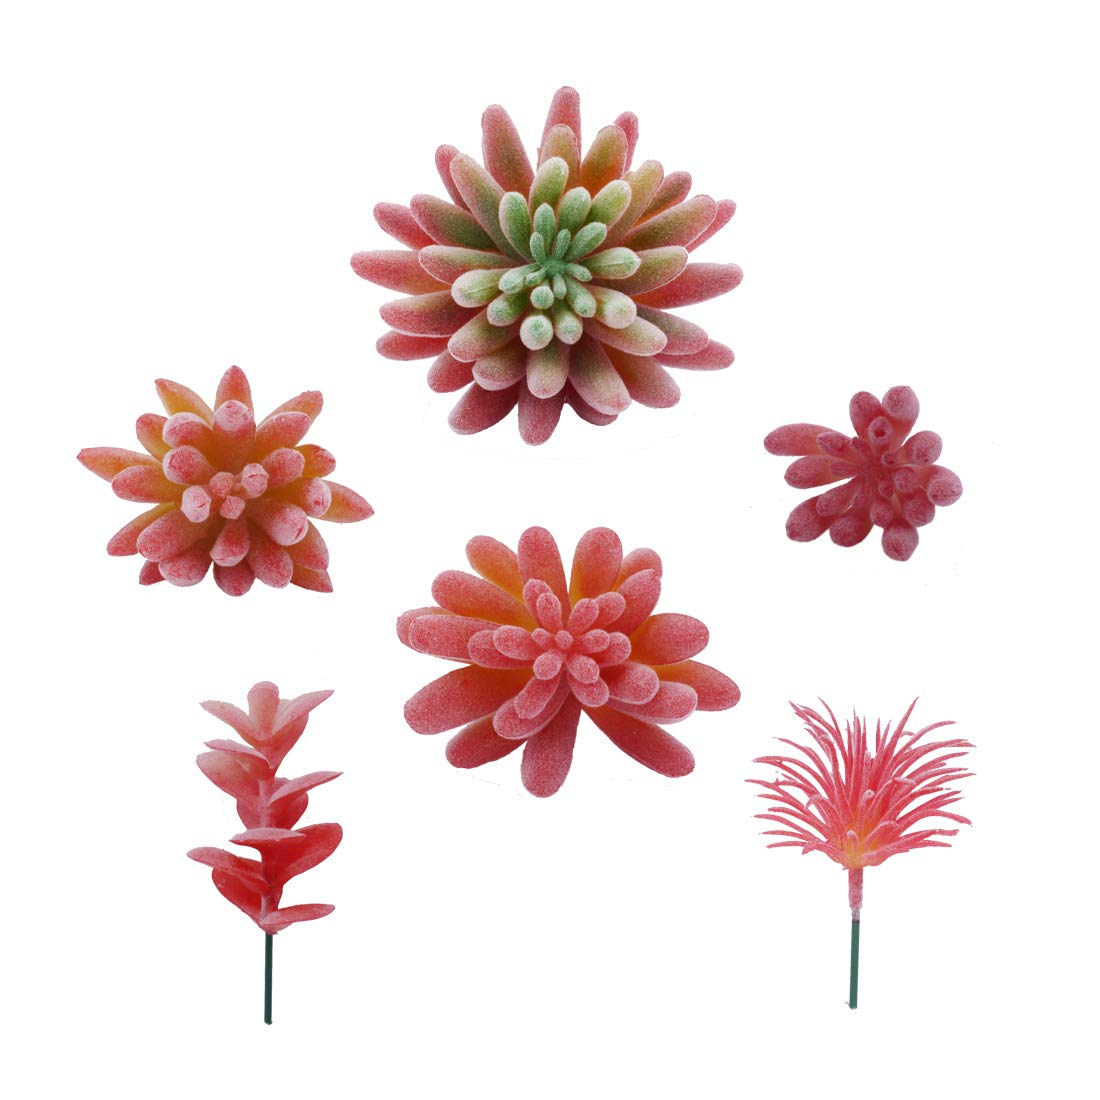 Artificial Succulent Plants Unpotted Fake Assorted - 6 Pcs Faux Flocking Succulents Arrangement Face Plant Small Greenery Set - Textured Fake Cacti Bulk for Wedding Floral Decorative Indoor Wall